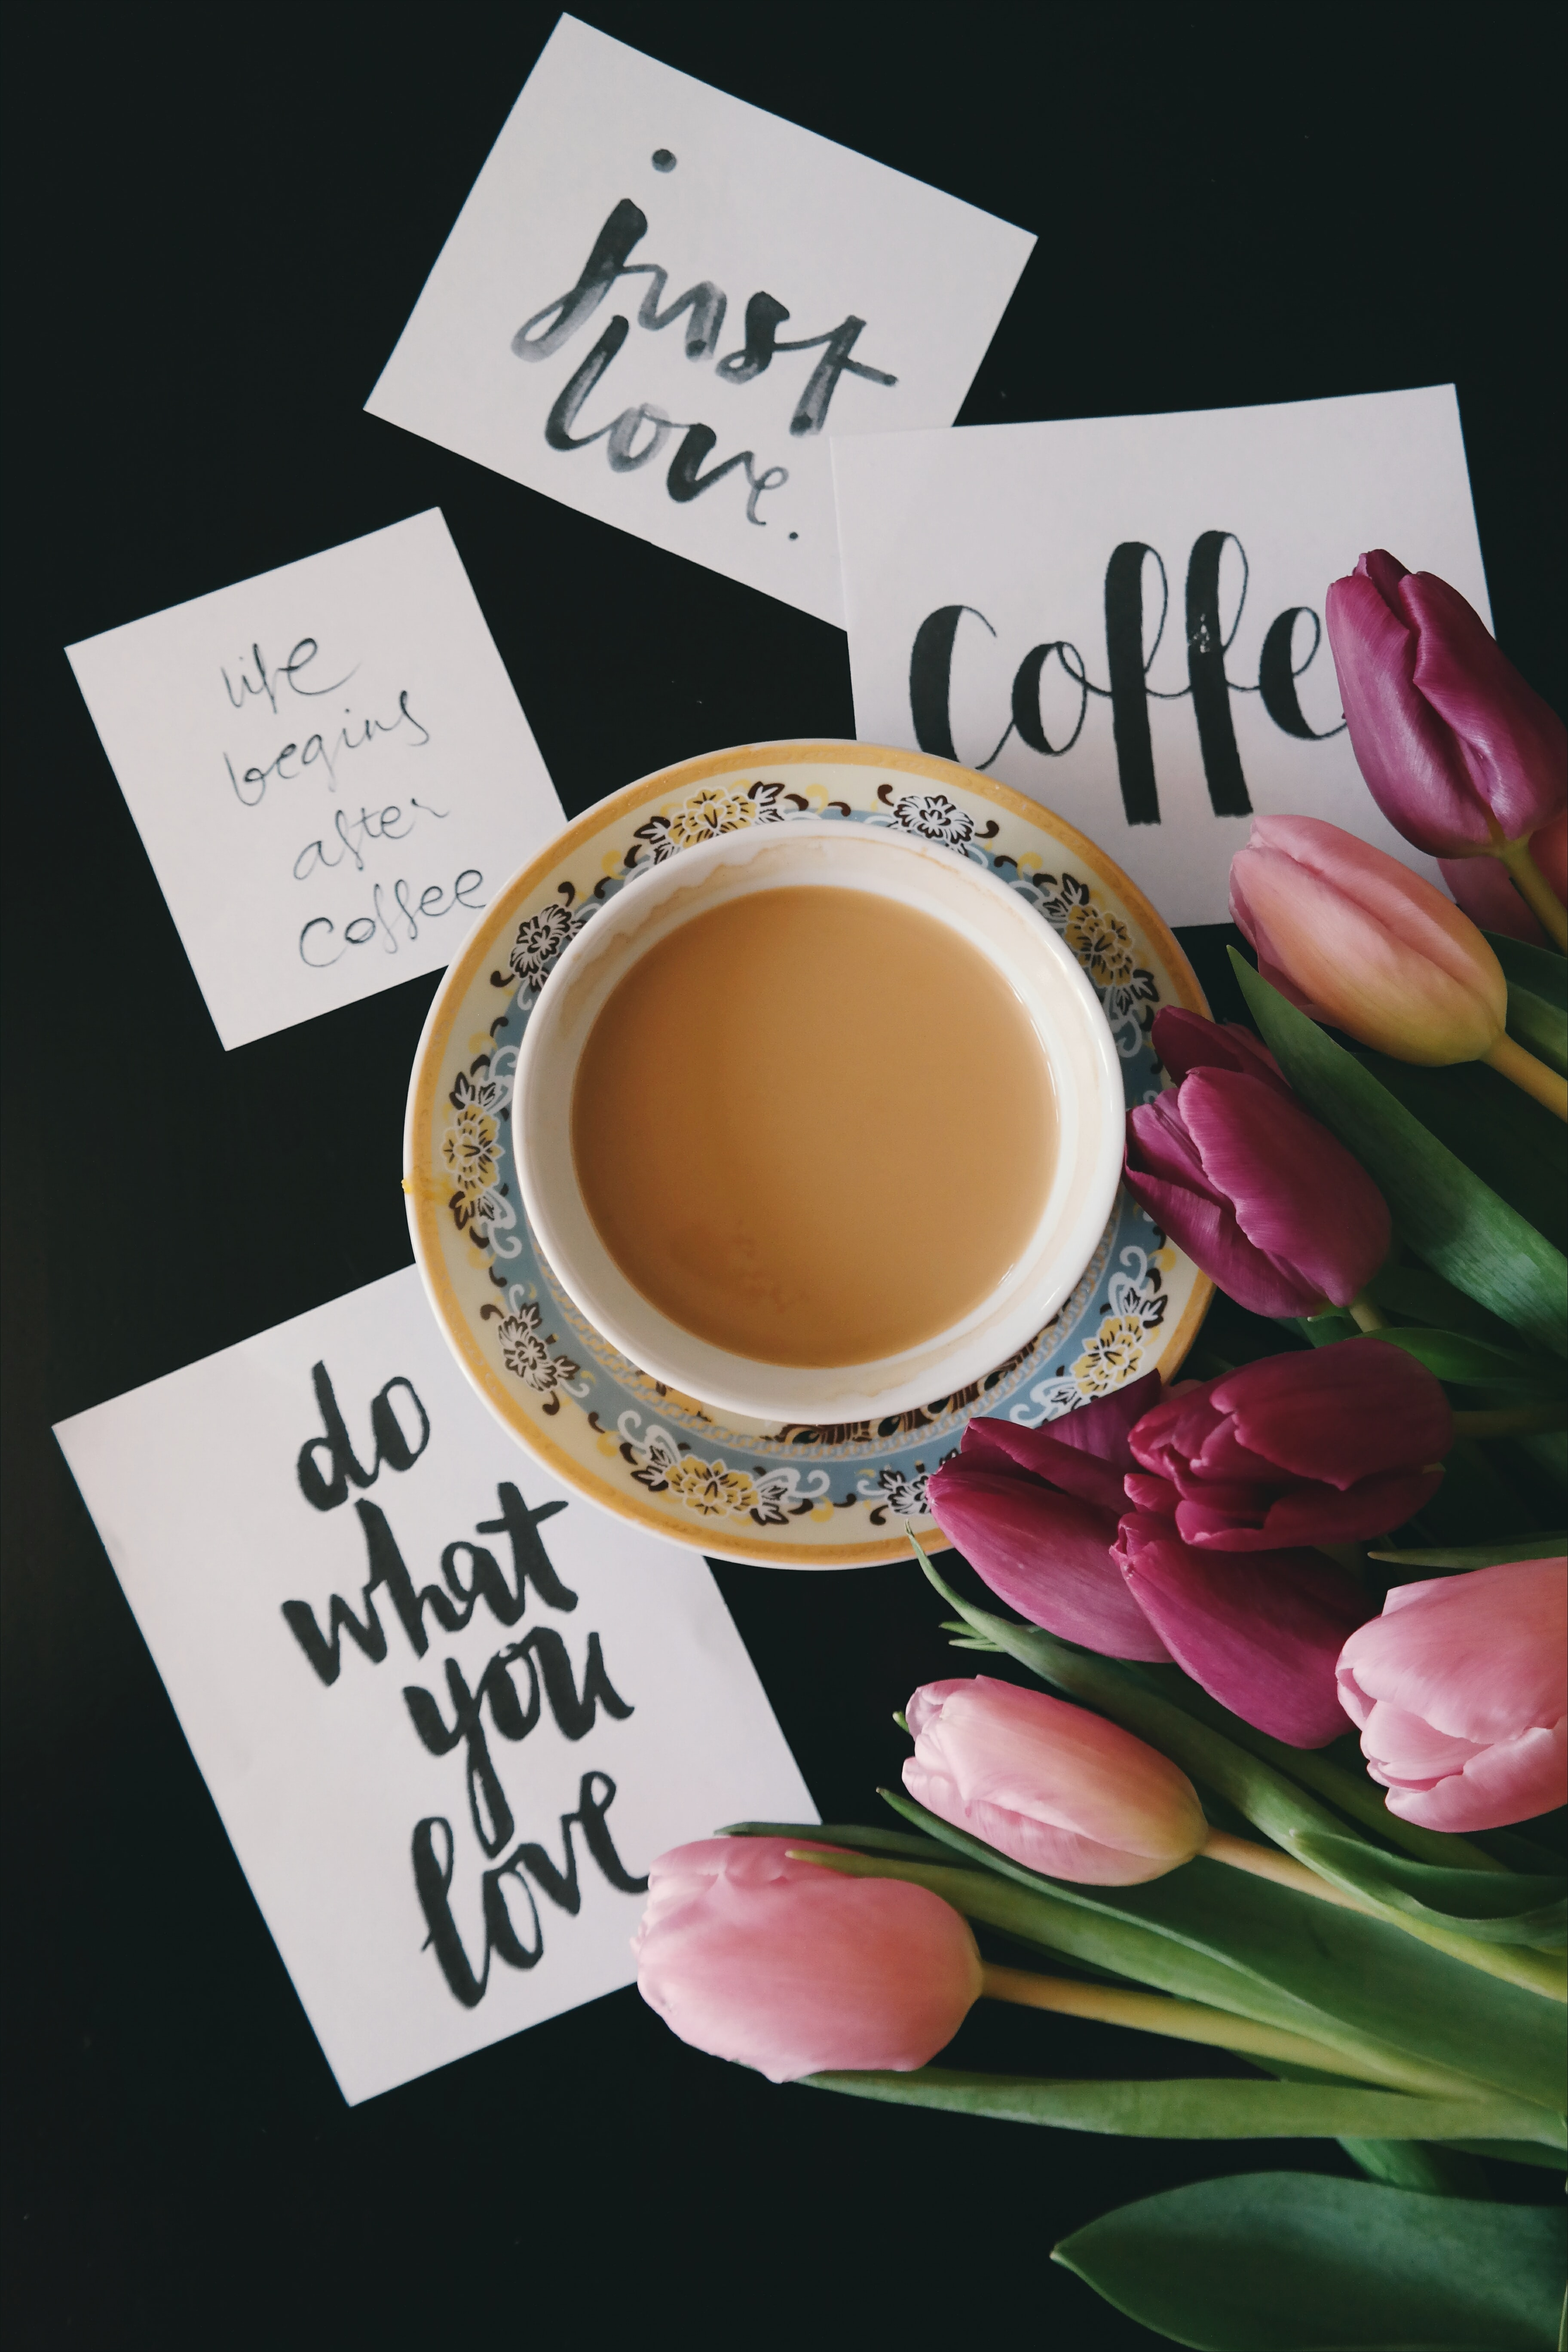 Motivational notes next to a cup of coffee.